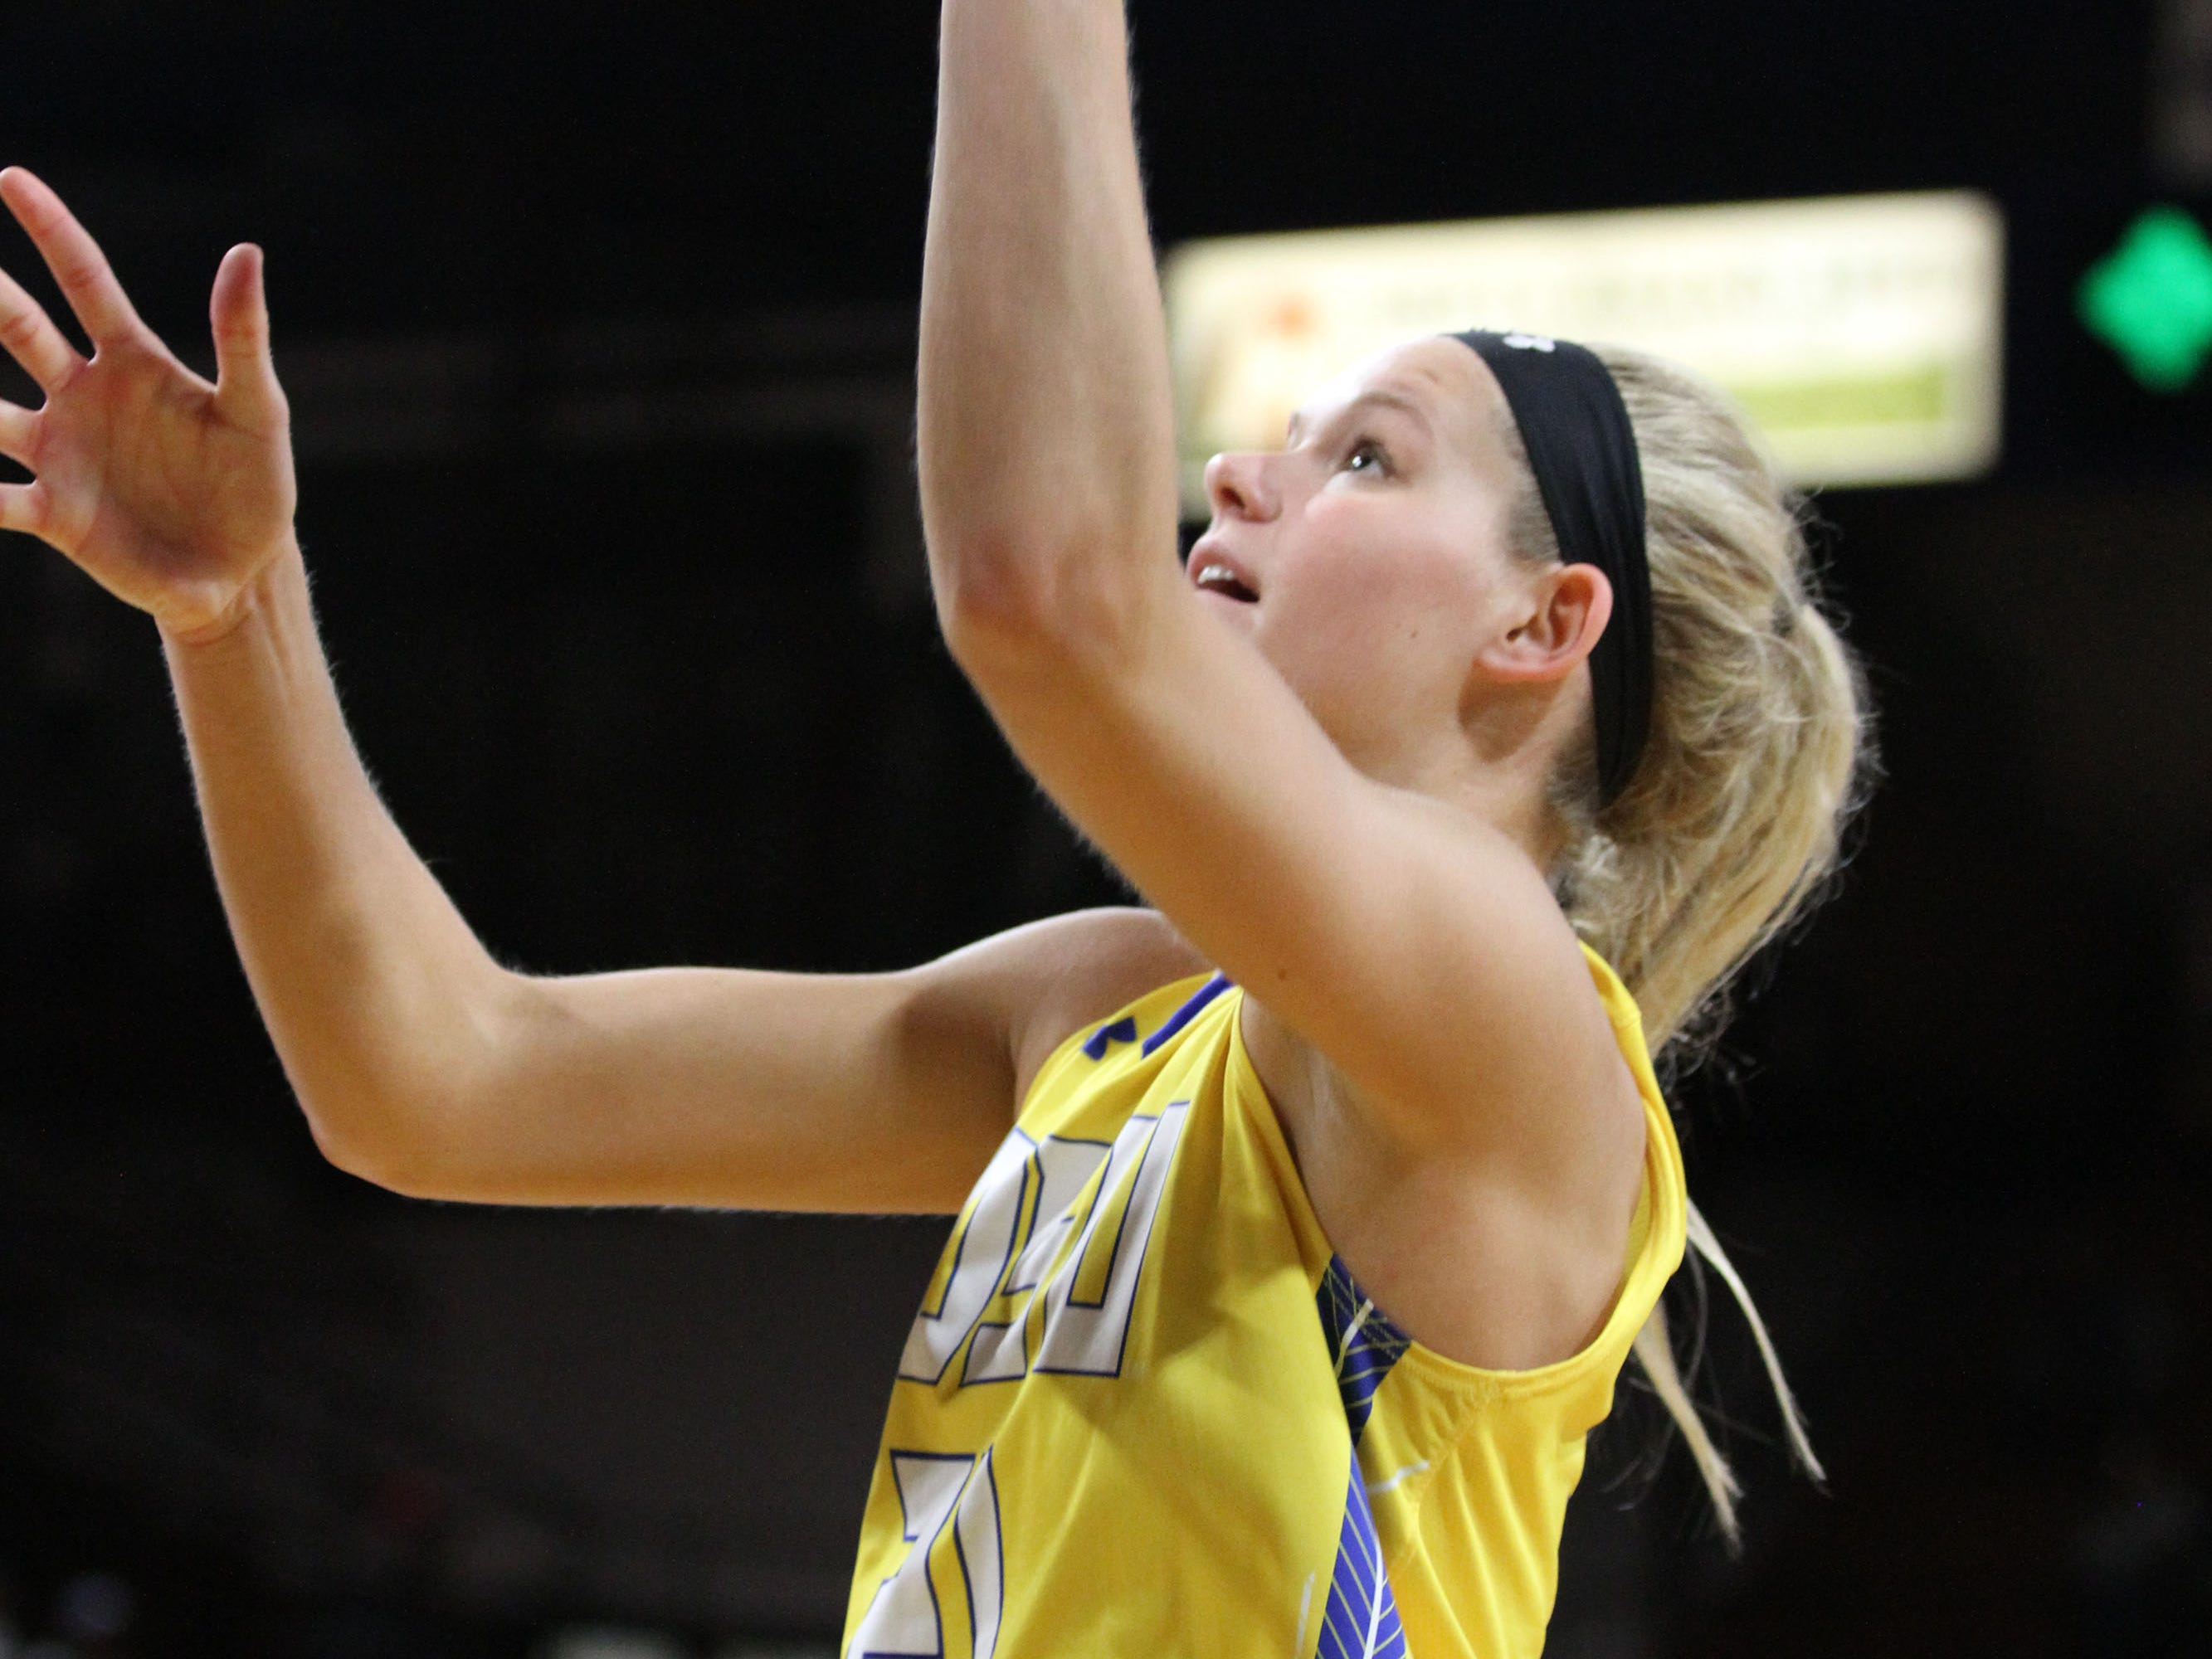 South Dakota State's Tylee Irwin scores in the paint during the second quarter of the Jackrabbits' matchup against Oral Roberts Saturday afternoon at Frost Arena in Brookings.